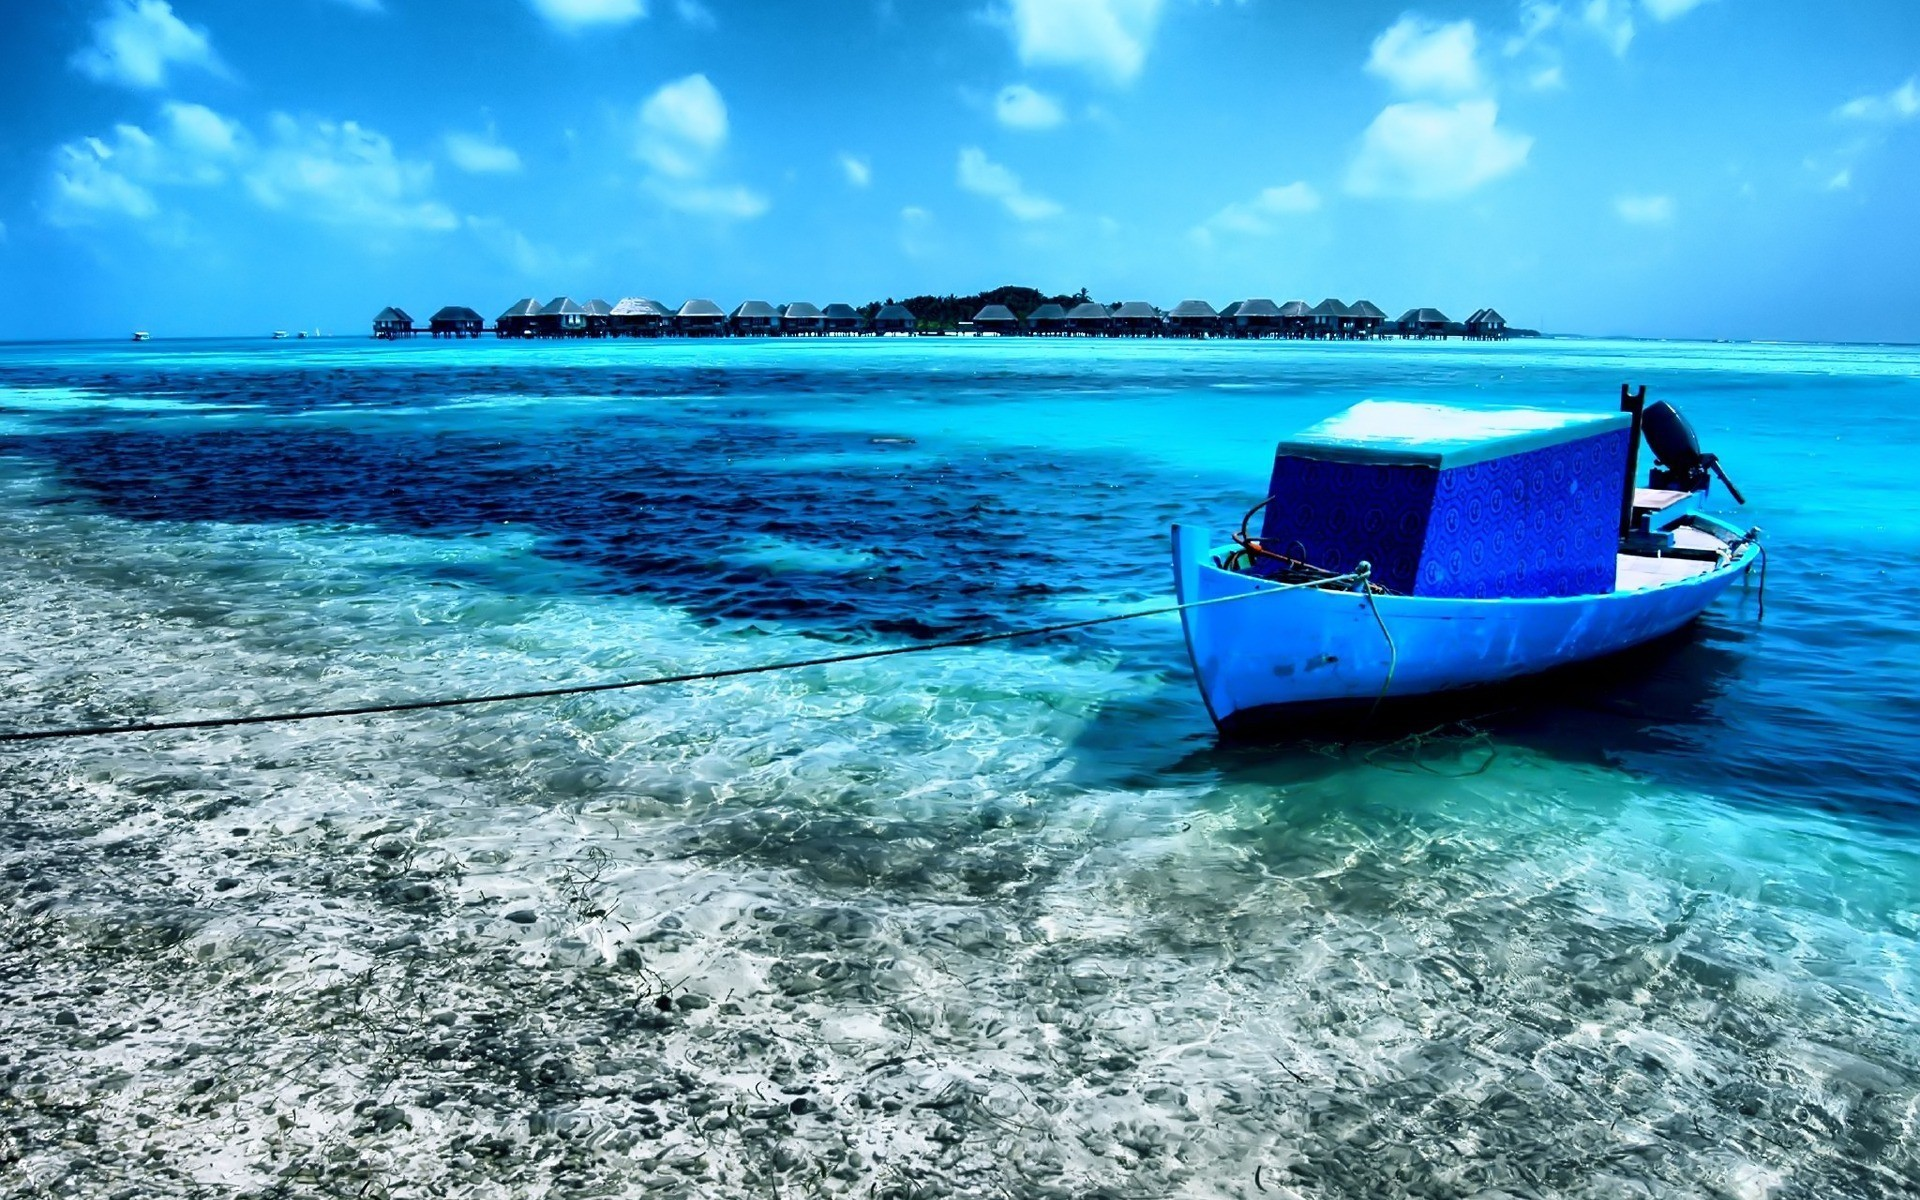 Boat in shallow water